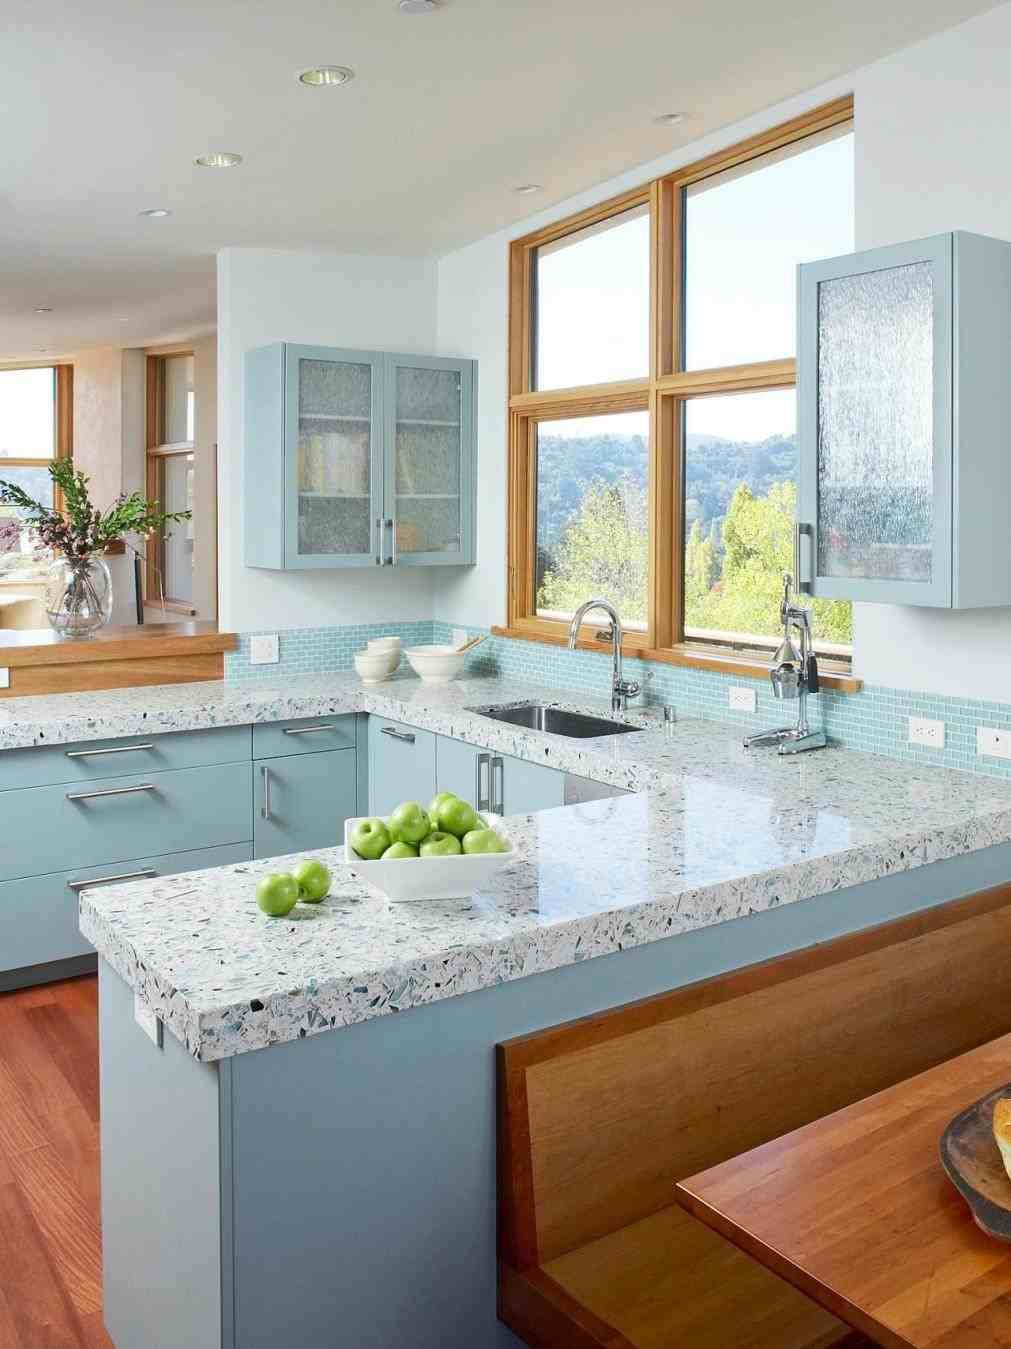 New Post navy blue and white kitchen cabinets visit Bobayule ...